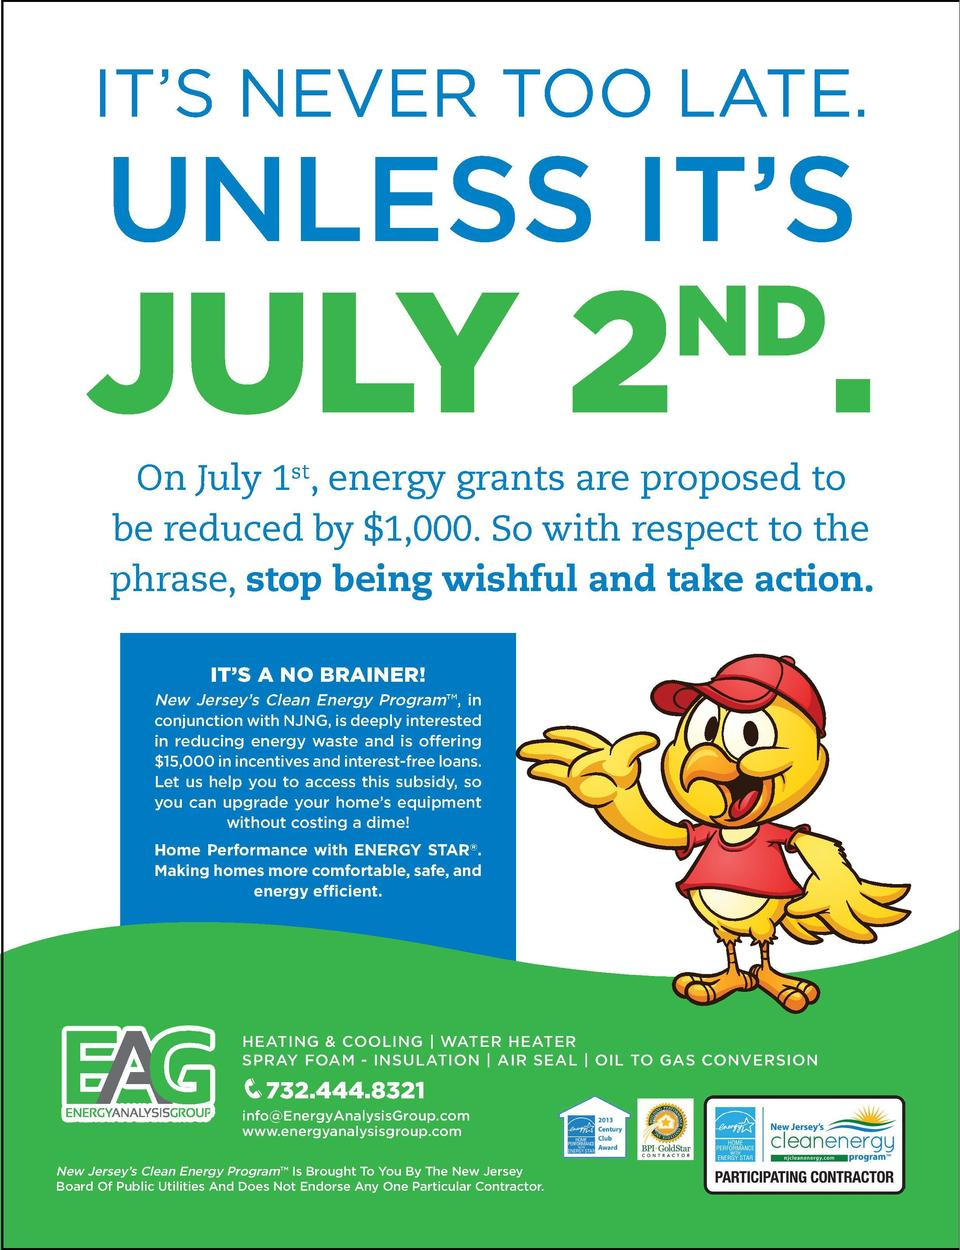 IT   S NEVER TOO LATE.  UNLESS IT   S  JULY 2 . ND  On July 1st, energy grants are proposed to be reduced by  1,000. So wi...